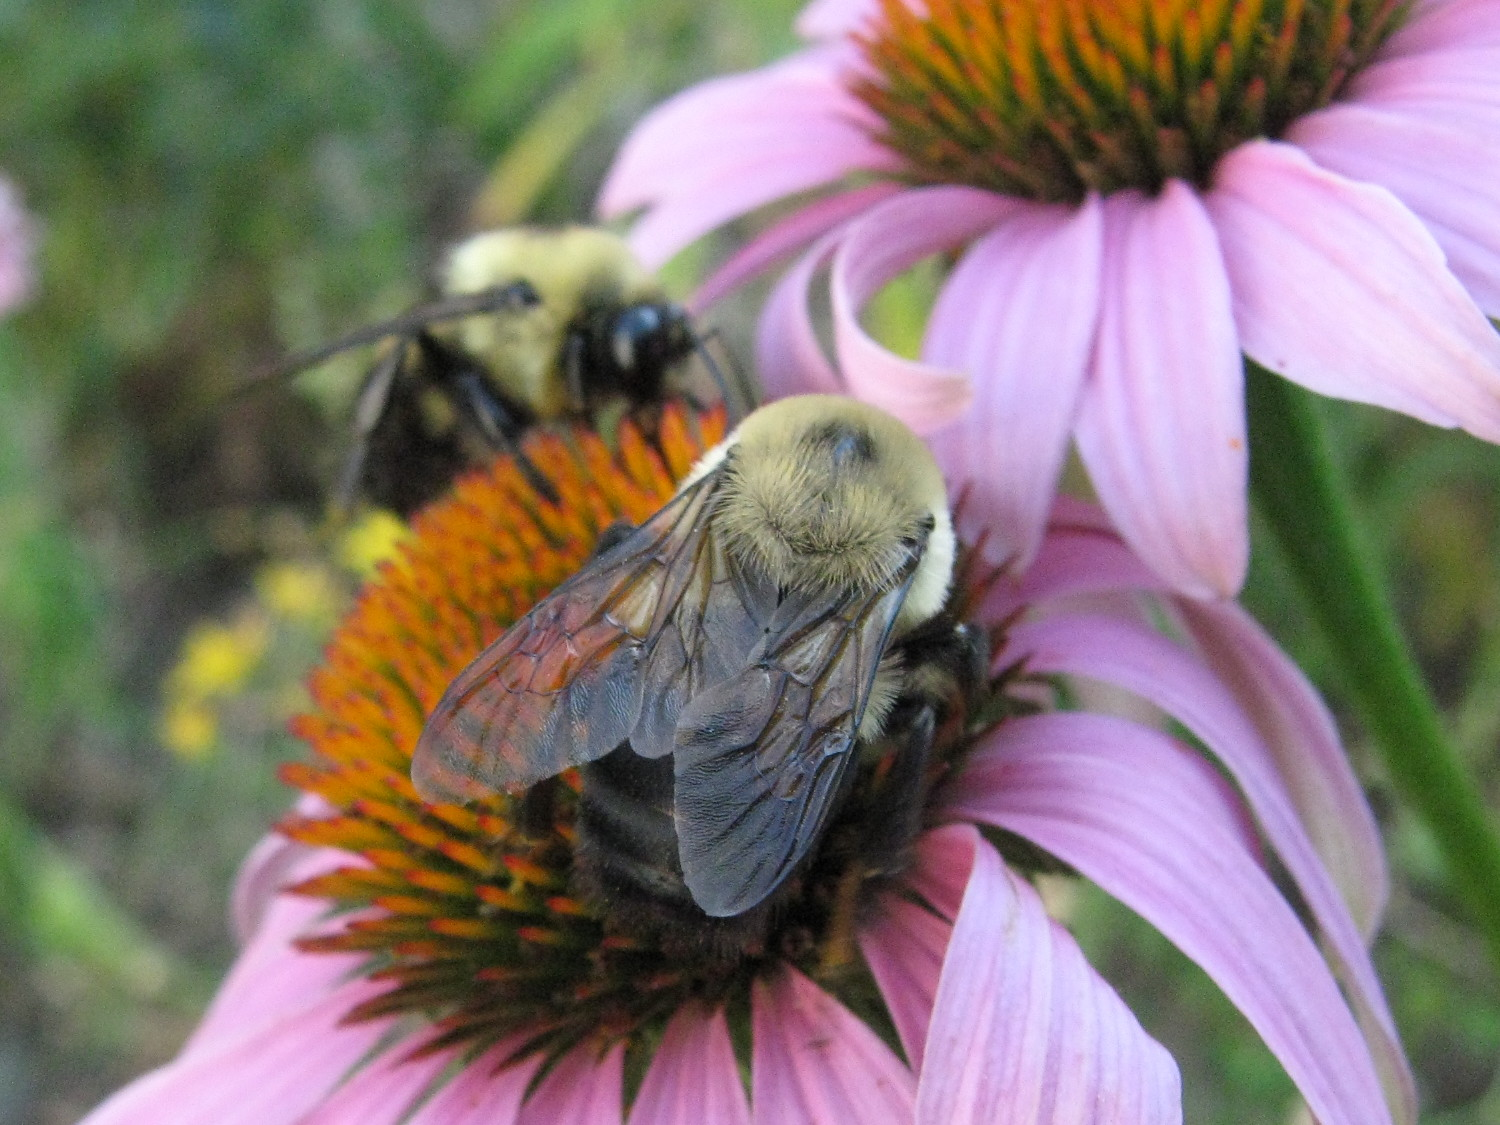 Two bumblebees jostling on a coneflower